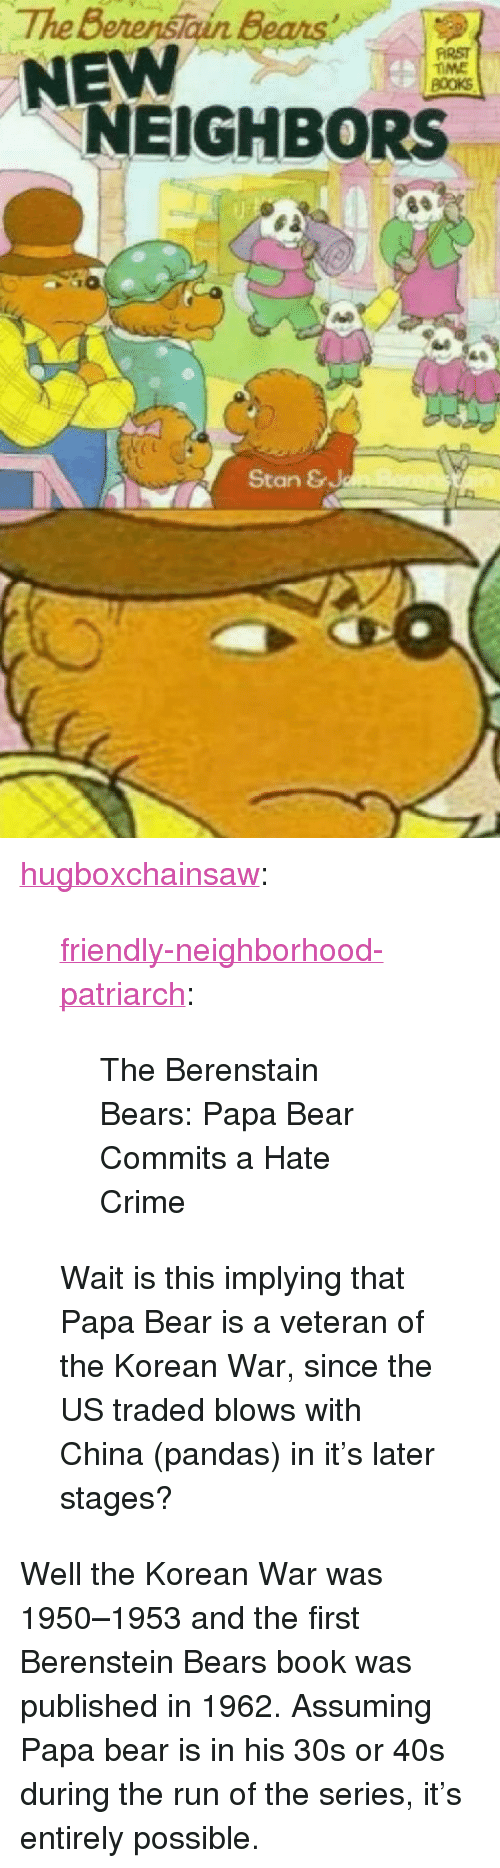 "papa bear: The Berenstain Bears  NEW  FİRST  TIME  NEIGHBORS  4  Stan & <p><a href=""https://hugboxchainsaw.tumblr.com/post/174255281867/friendly-neighborhood-patriarch-the-berenstain"" class=""tumblr_blog"">hugboxchainsaw</a>:</p>  <blockquote><p><a href=""http://friendly-neighborhood-patriarch.tumblr.com/post/173865249382/the-berenstain-bears-papa-bear-commits-a-hate"" class=""tumblr_blog"">friendly-neighborhood-patriarch</a>:</p> <blockquote><p>The Berenstain Bears: Papa Bear Commits a Hate Crime</p></blockquote> <p>Wait is this implying that Papa Bear is a veteran of the Korean War, since the US traded blows with China (pandas) in it's later stages?</p></blockquote>  <p>Well the Korean War was 1950–1953 and the first Berenstein Bears book was published in 1962. Assuming Papa bear is in his 30s or 40s during the run of the series, it's entirely possible.</p>"